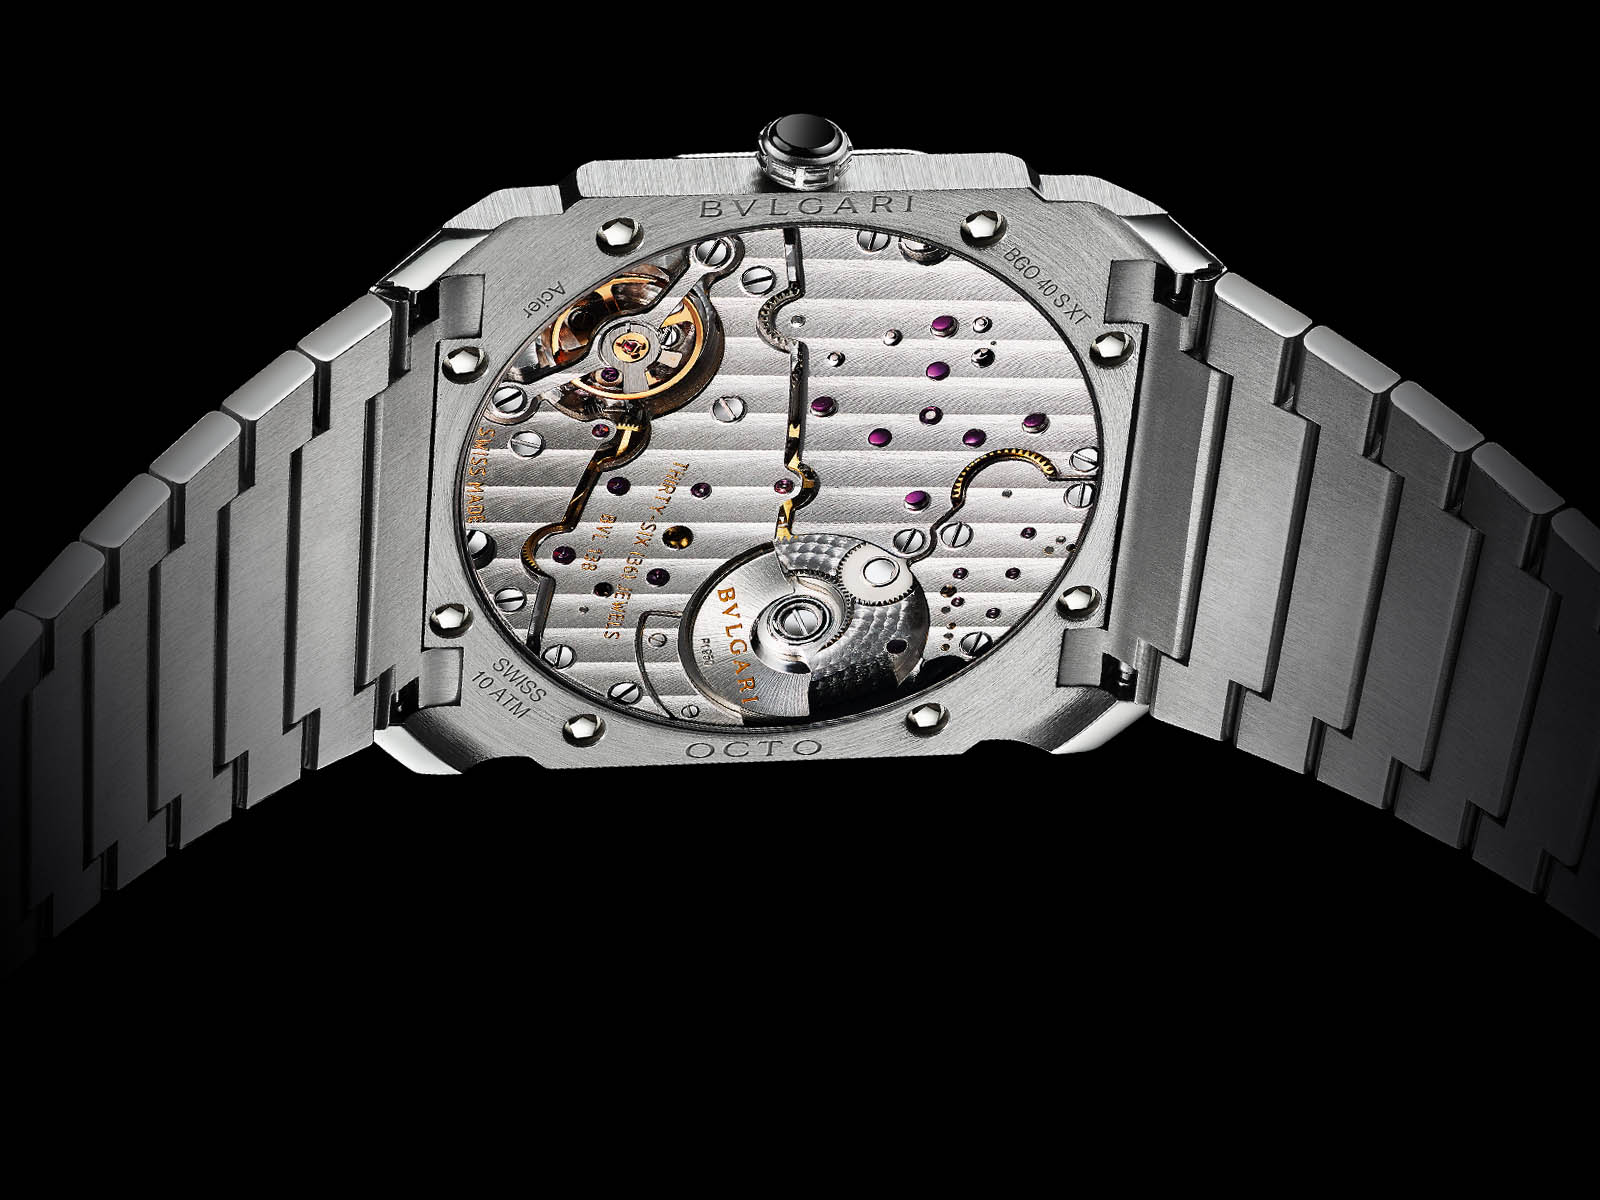 103431-bvlgari-octo-finissimo-blue-dial-in-steel-6.jpg